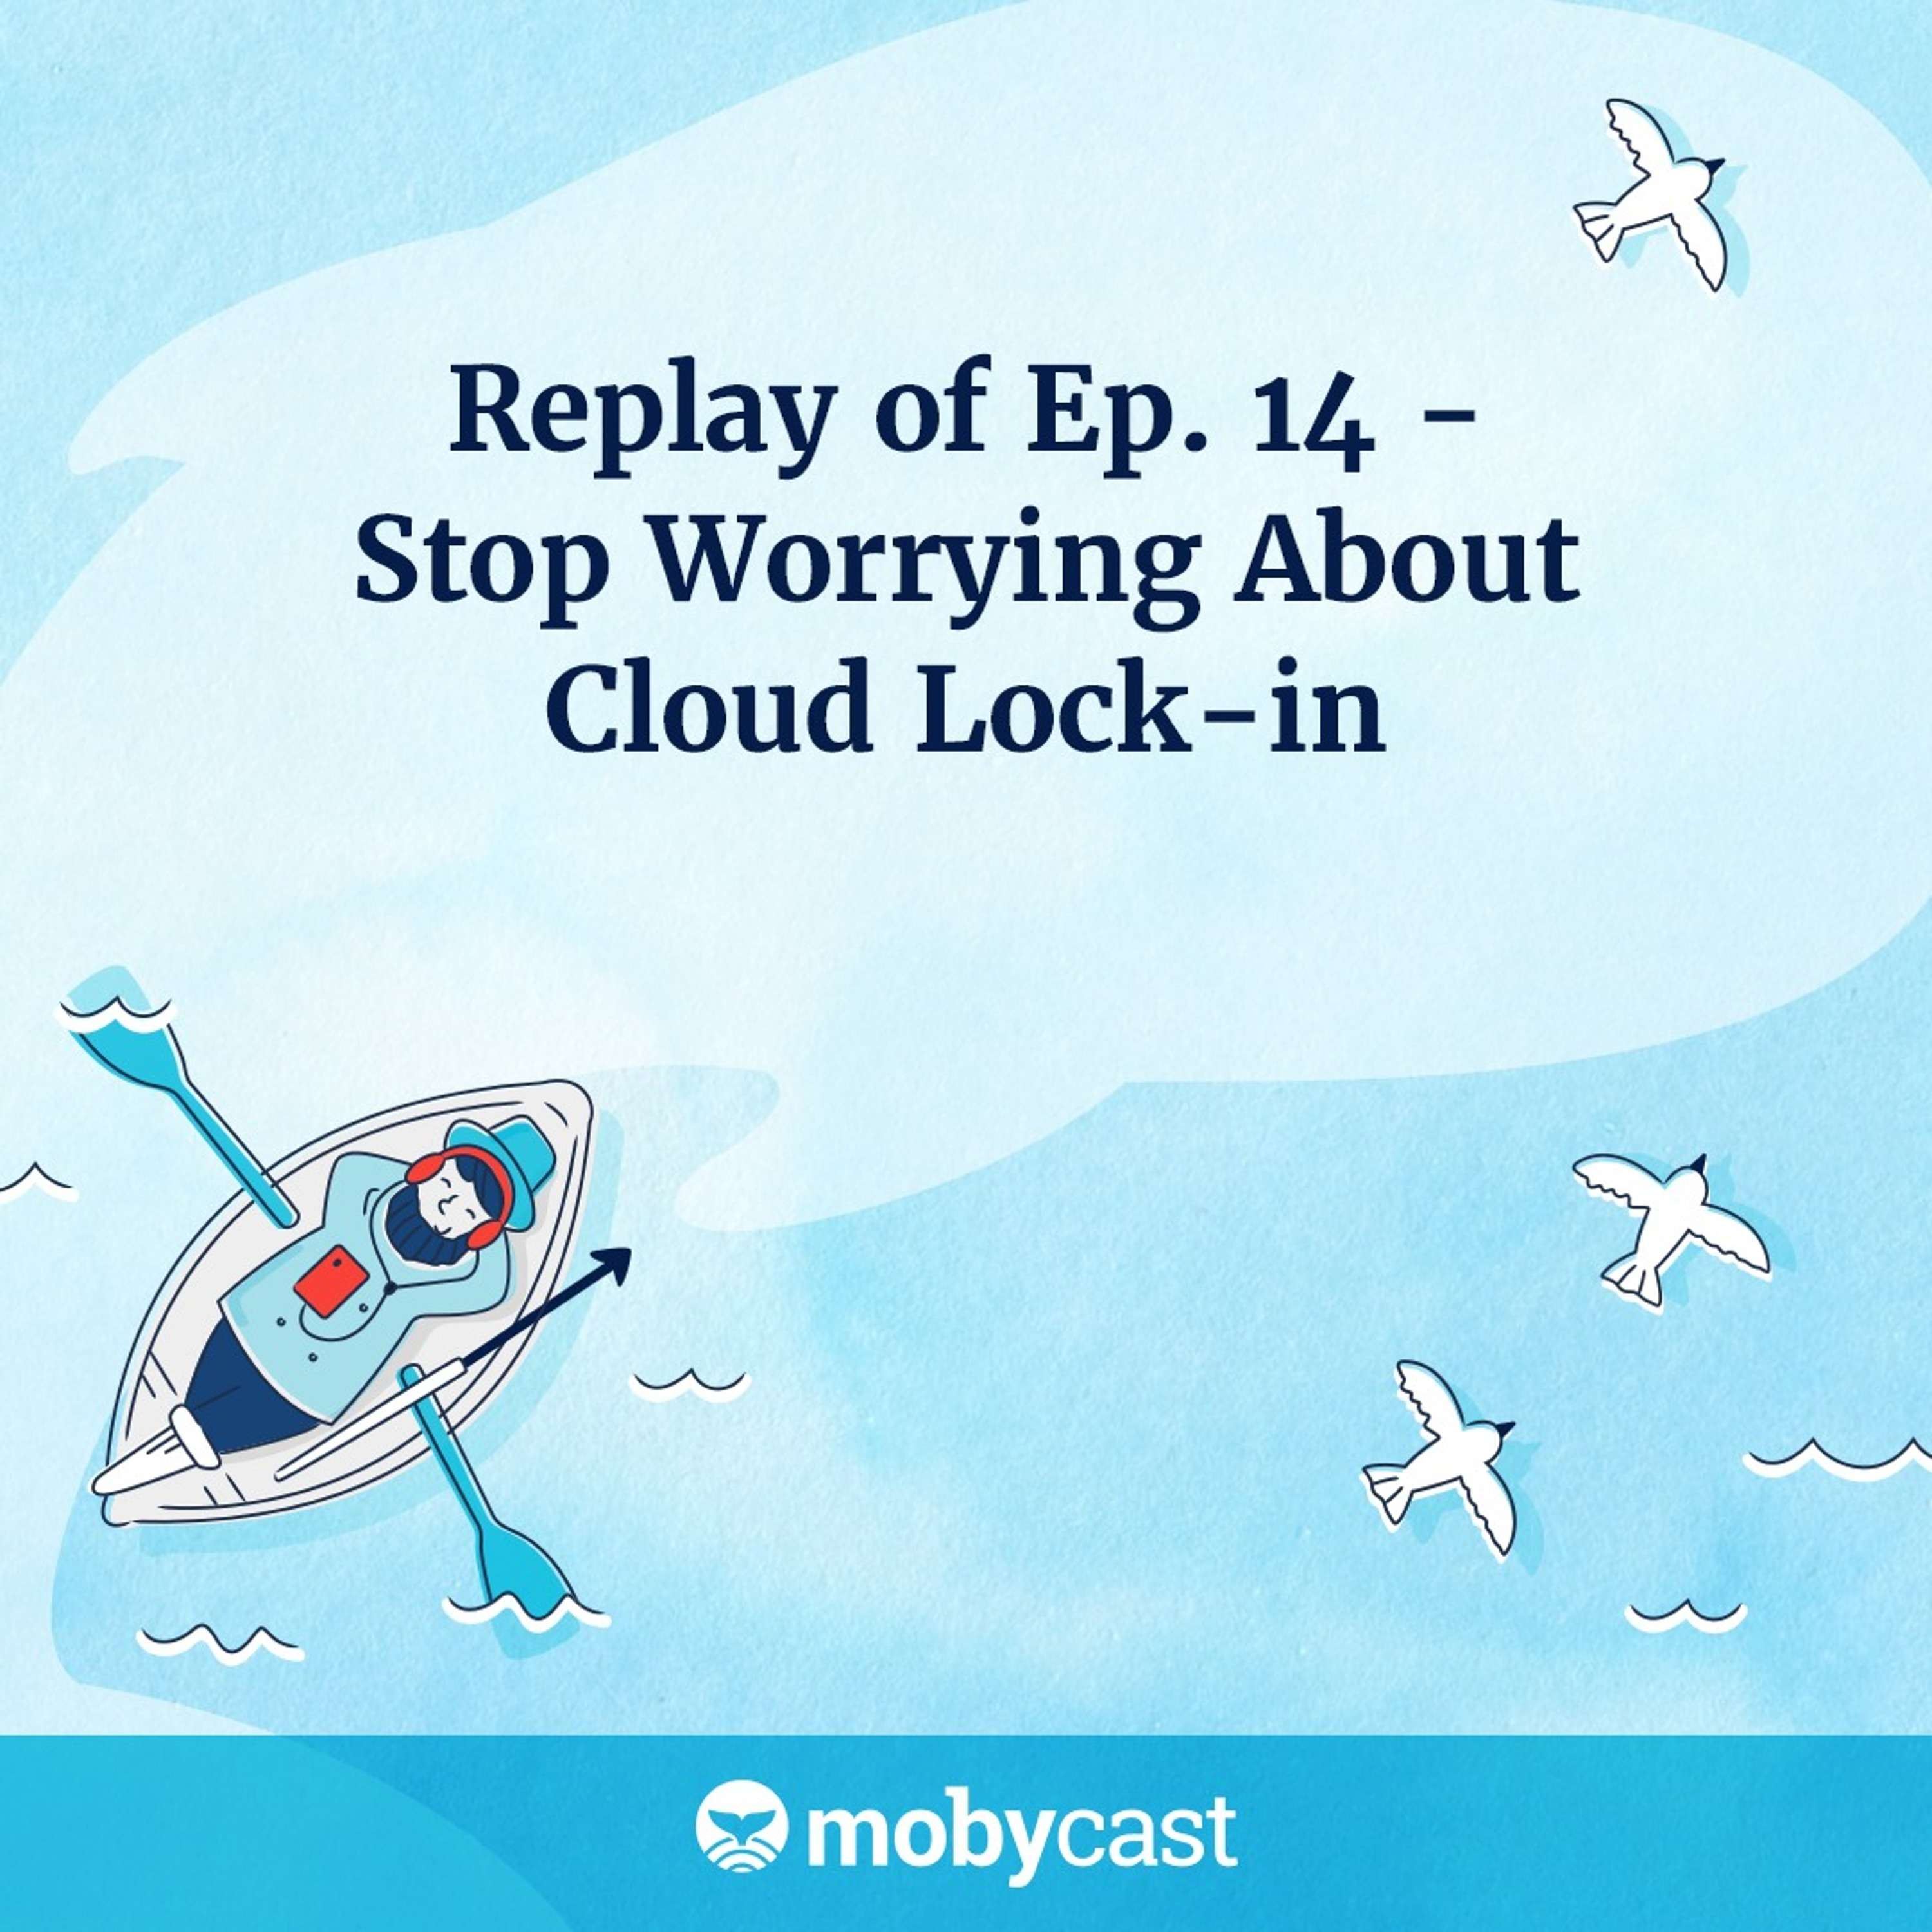 Replay of Ep 14. Stop Worrying About Cloud Lock-in